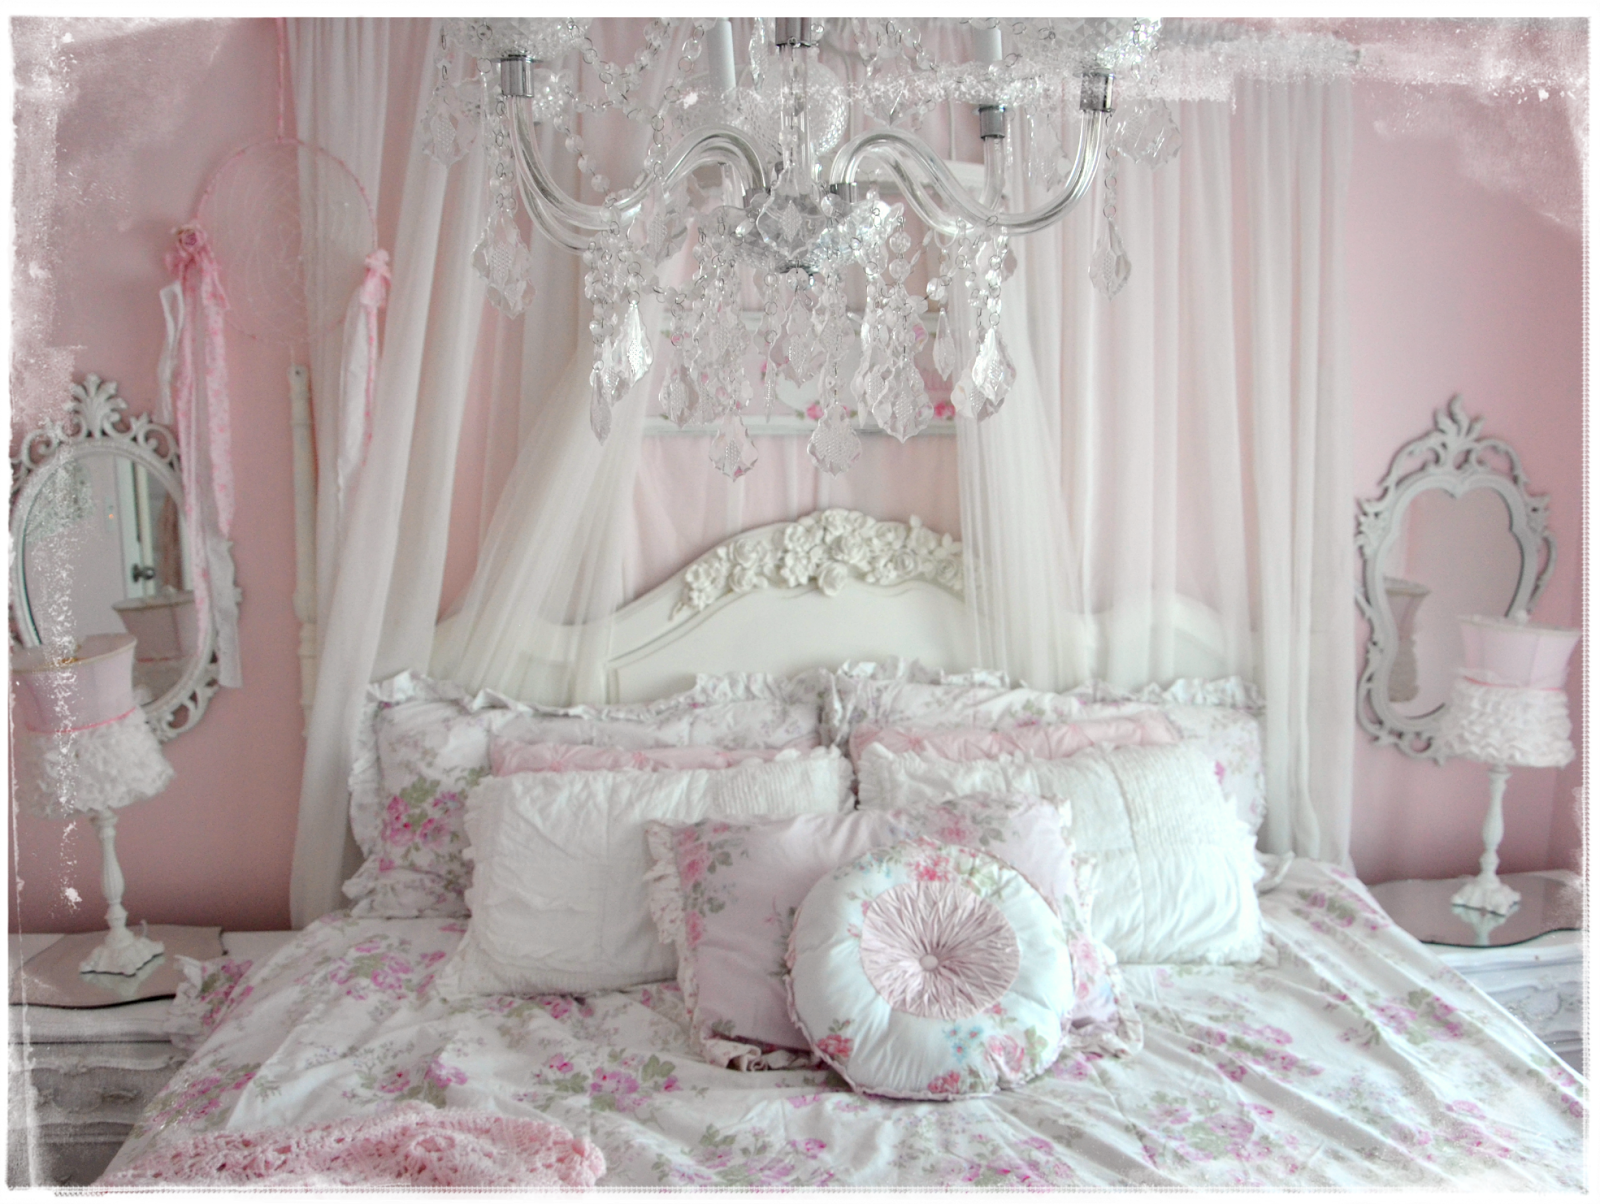 Not so shabby shabby chic new simply shabby chic bedding Shabby chic bedroom accessories